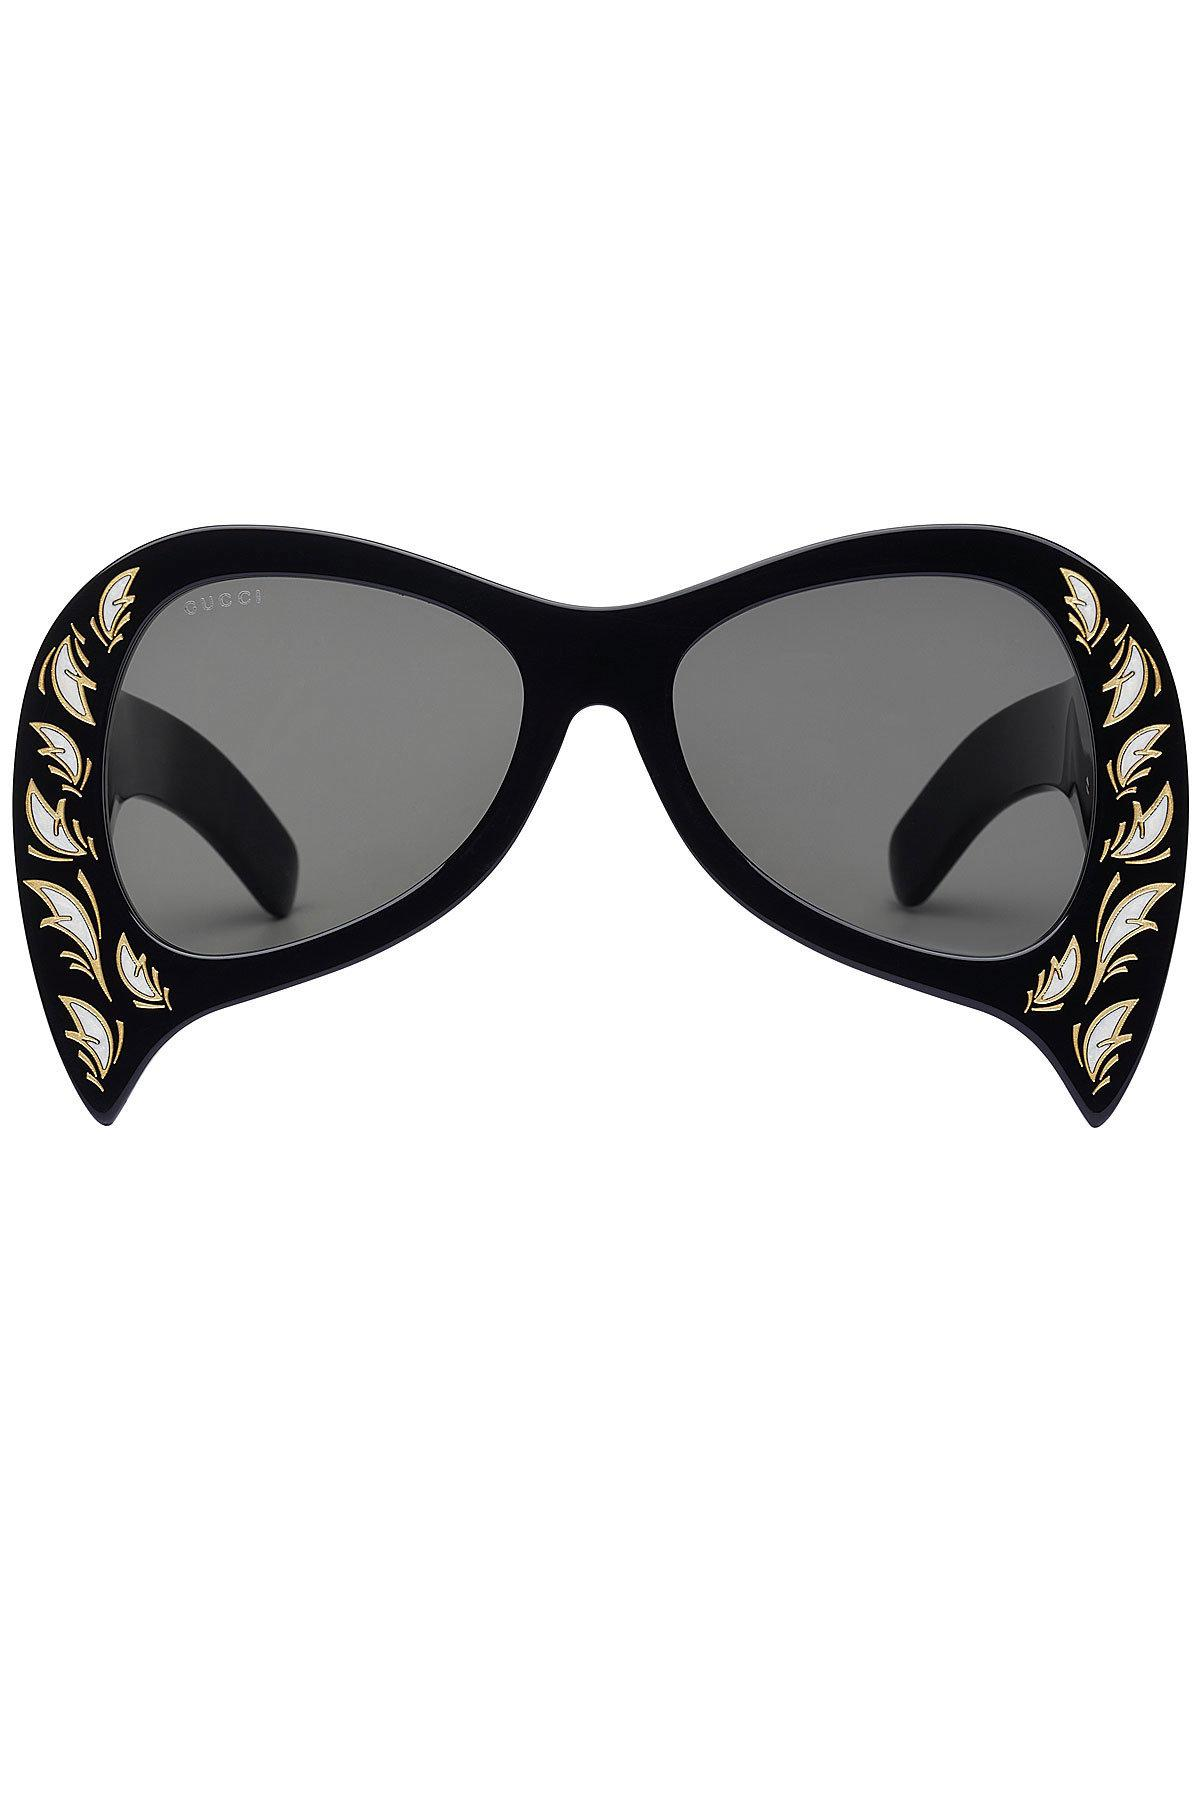 b55a2c0c079 Gucci Oversized Sunglasses With Mother Of Pearl in Black - Lyst